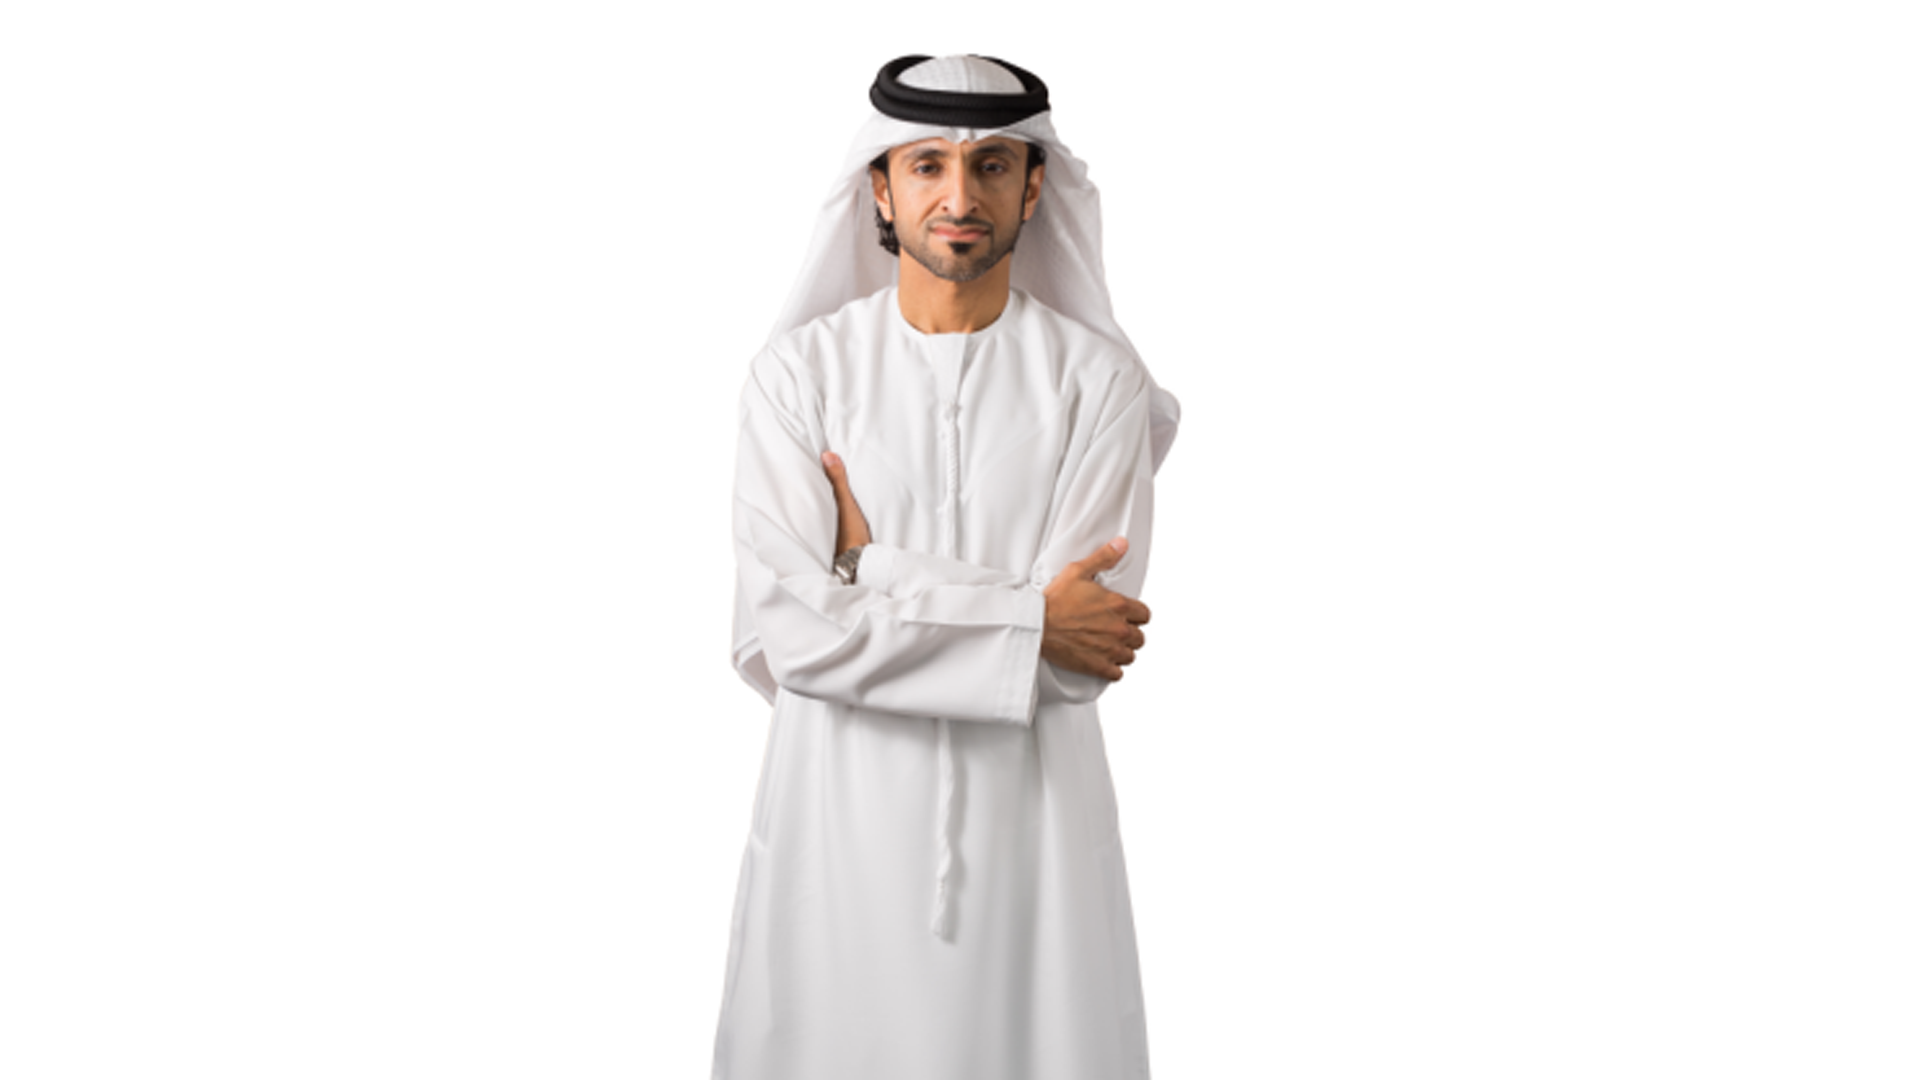 Agthia Aligns with UAE Leadership and Reaffirms its Readiness in the face of Current Challenges